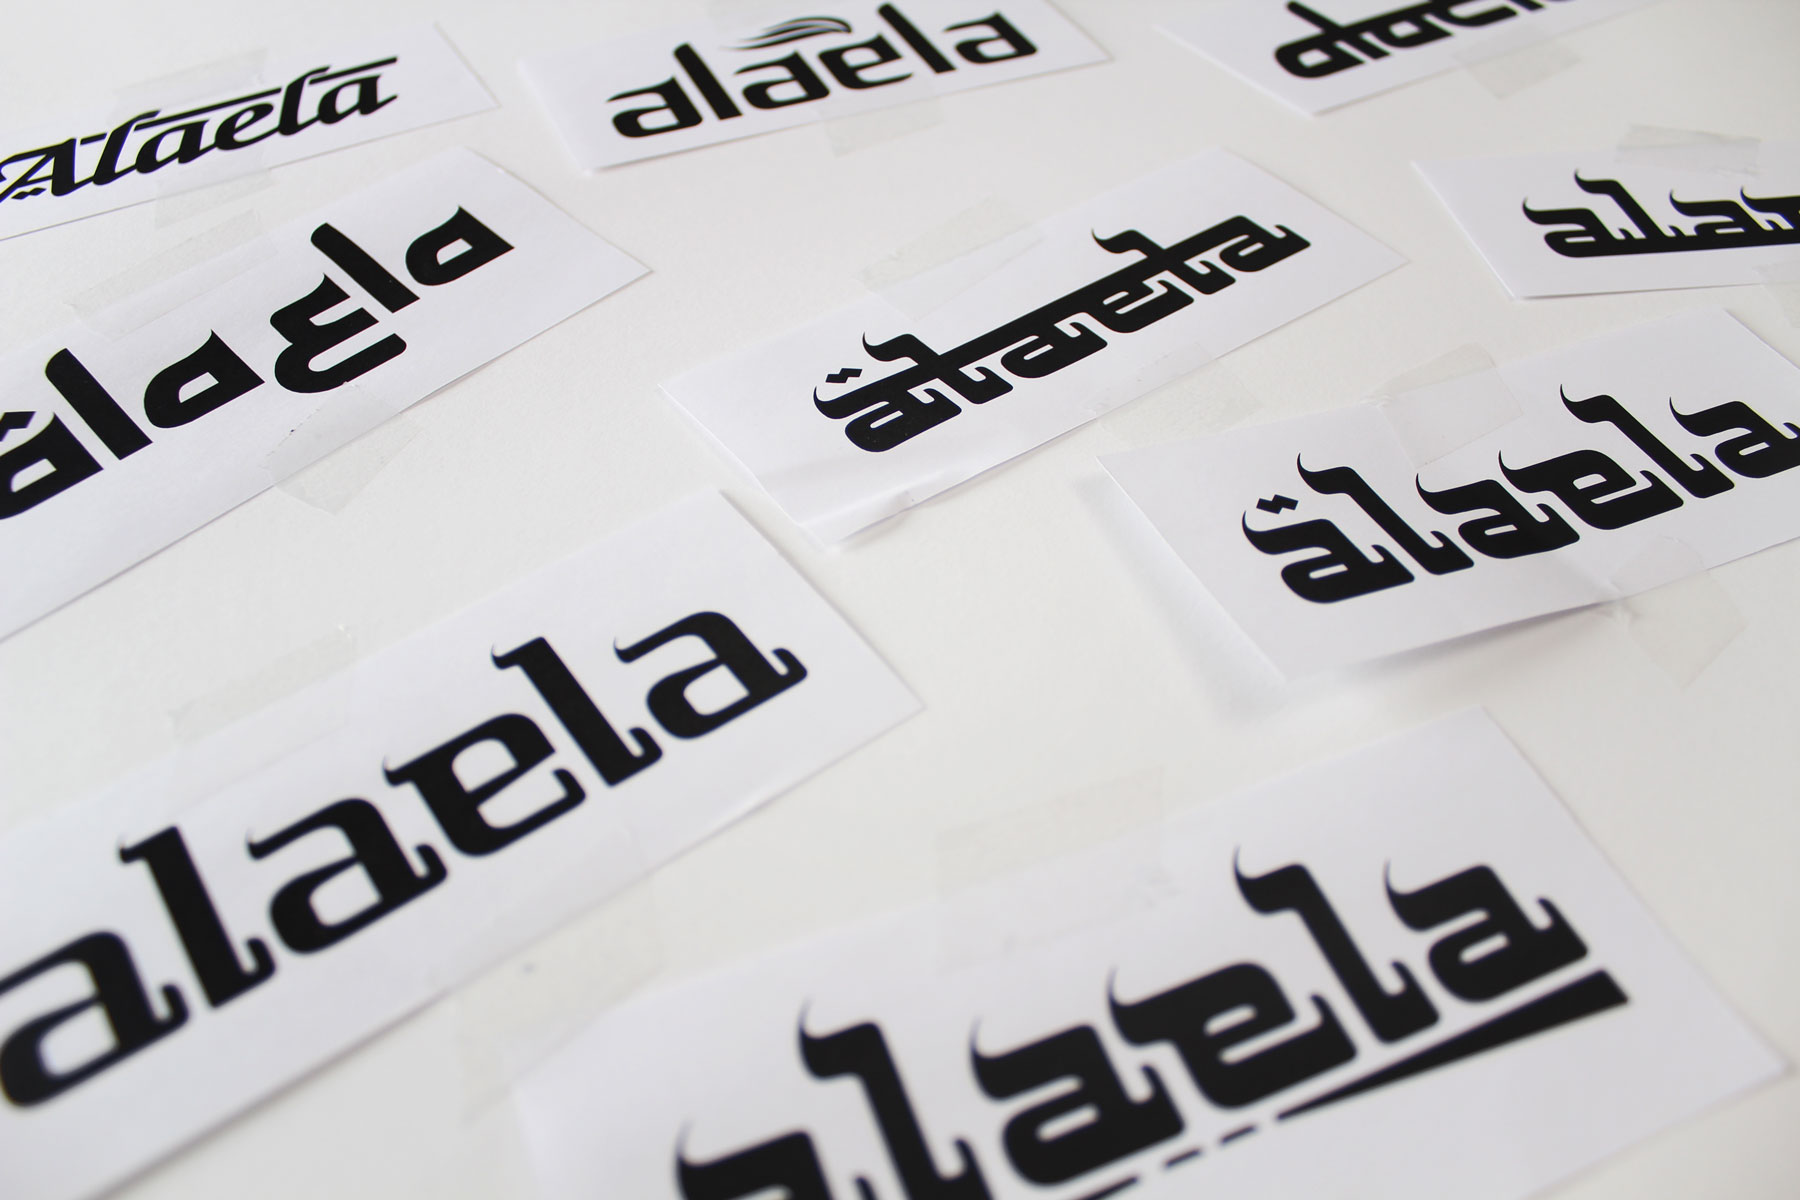 The Alaela masthead has been carefully crafted, to capture both a western and eastern feel.